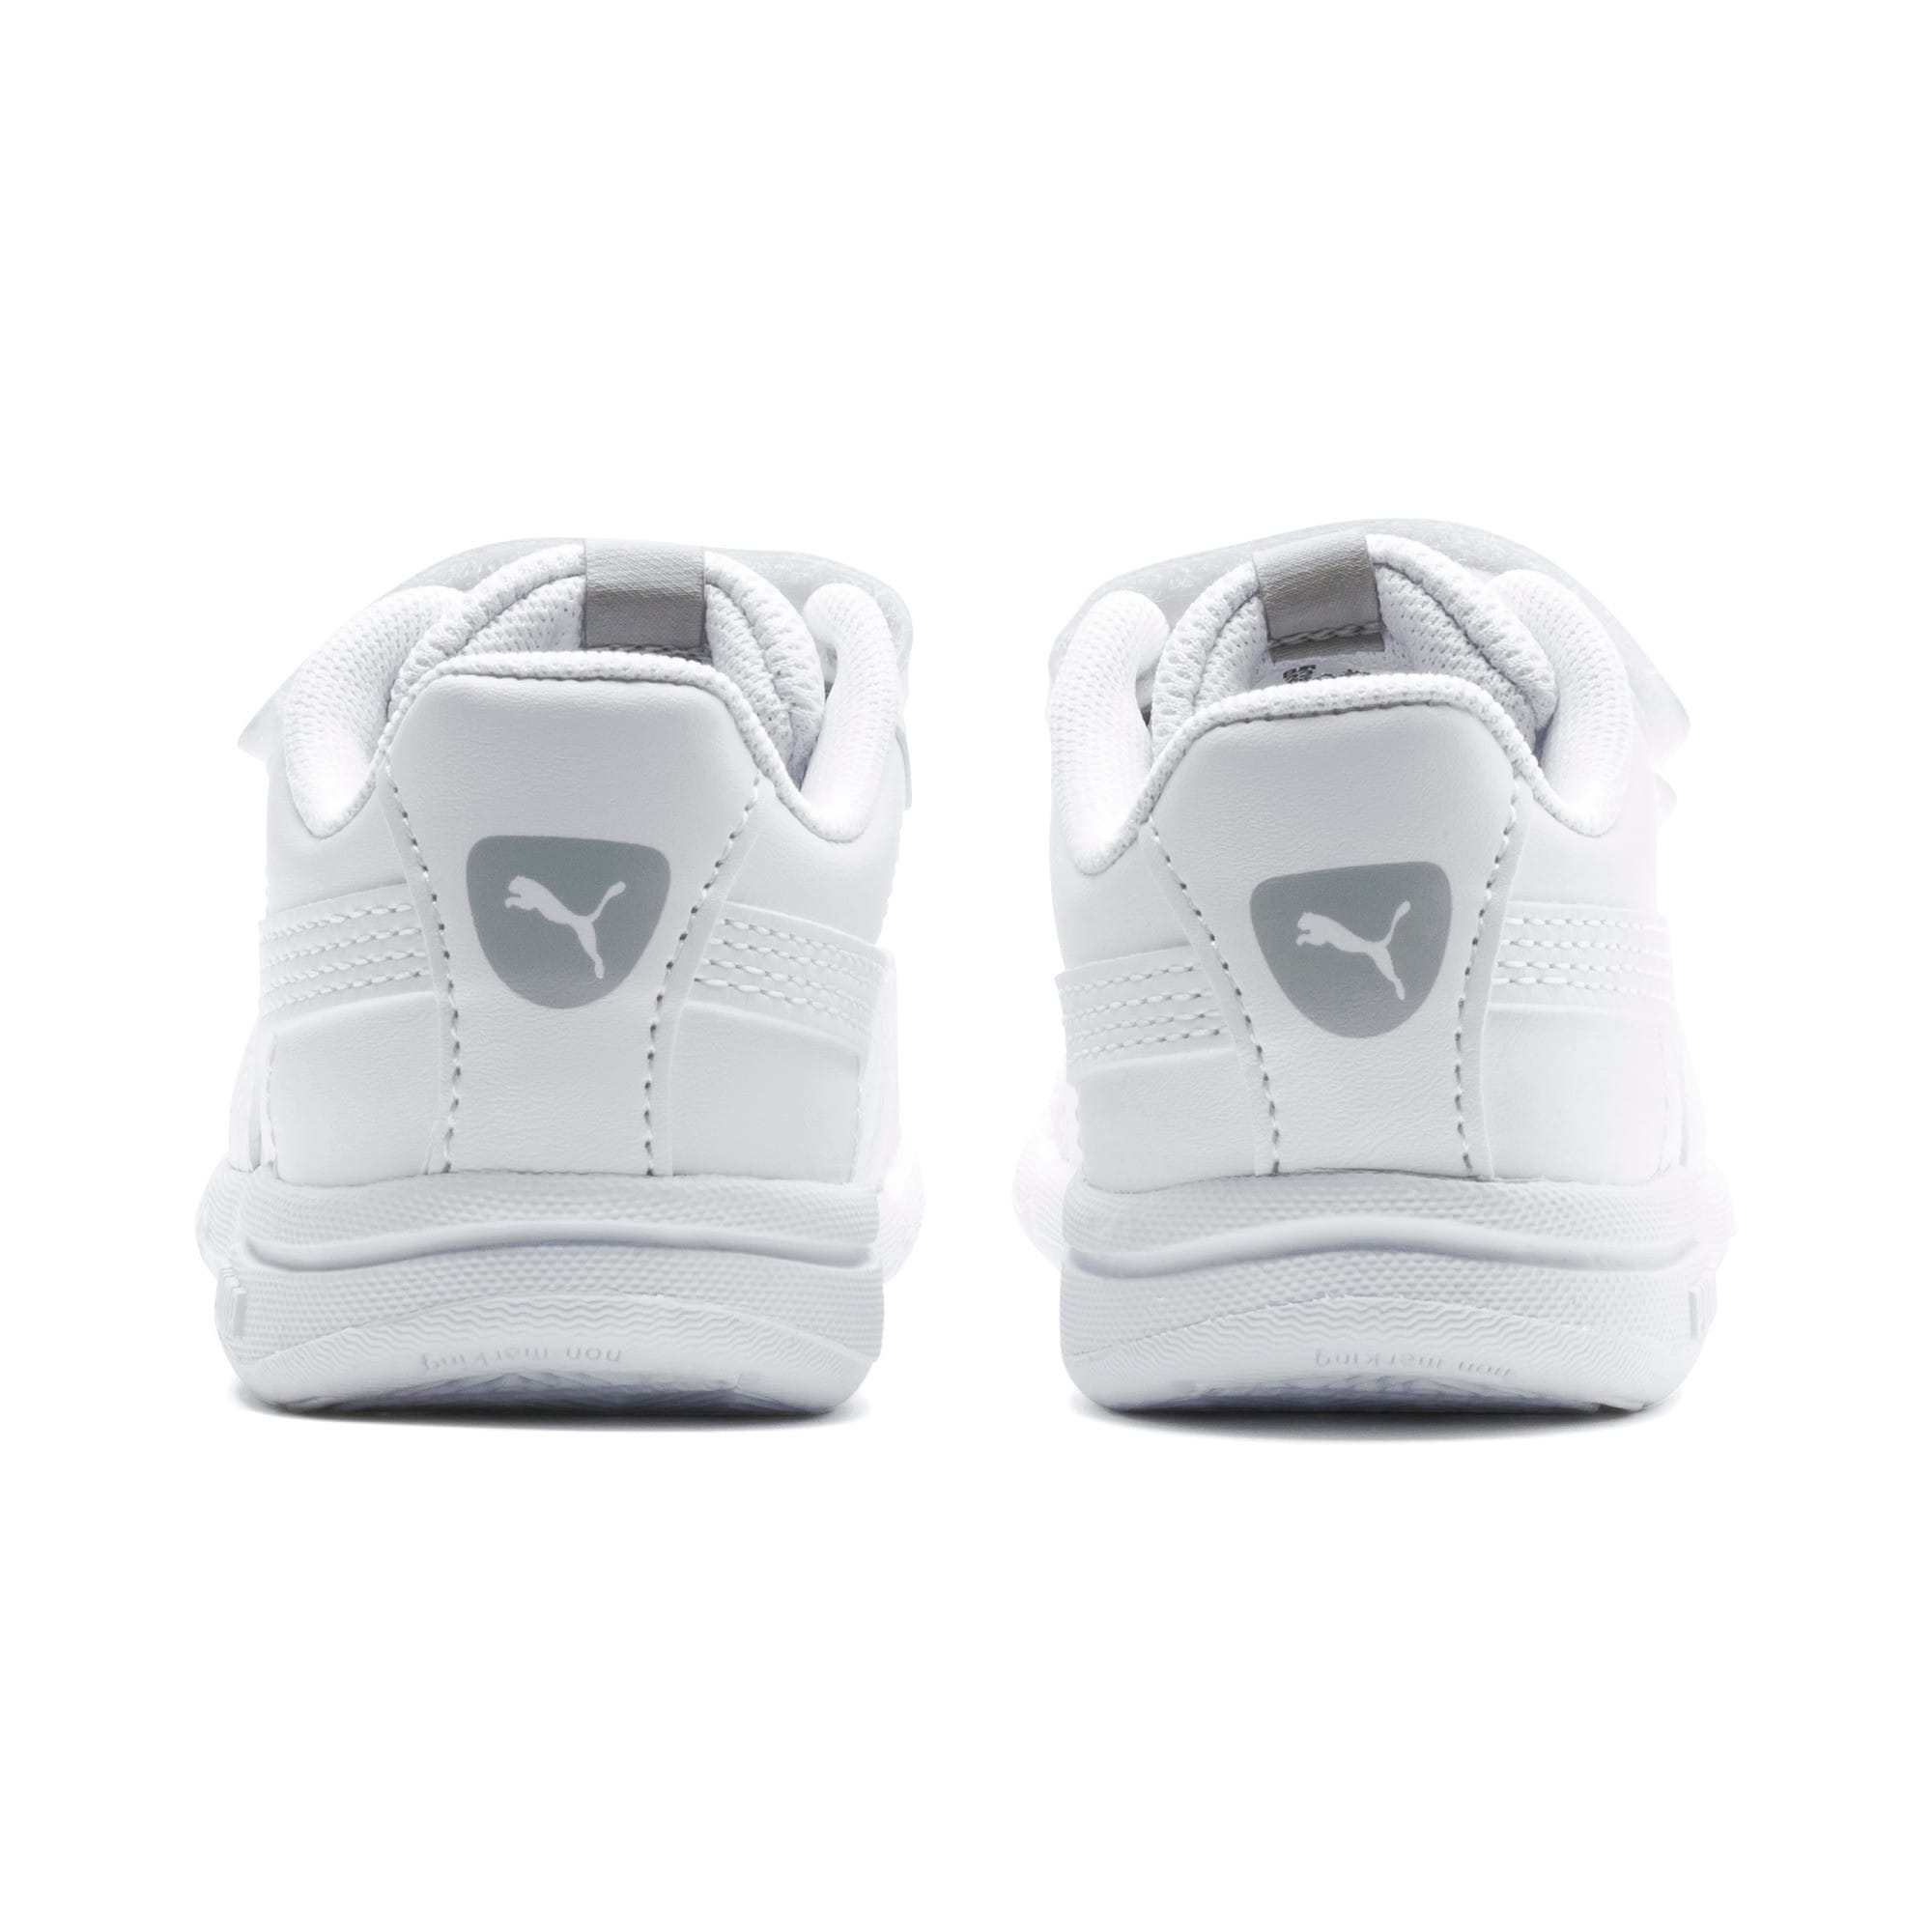 Thumbnail 3 of Stepfleex 2 SL VE V Babies Sneaker, Puma White-Puma White, medium